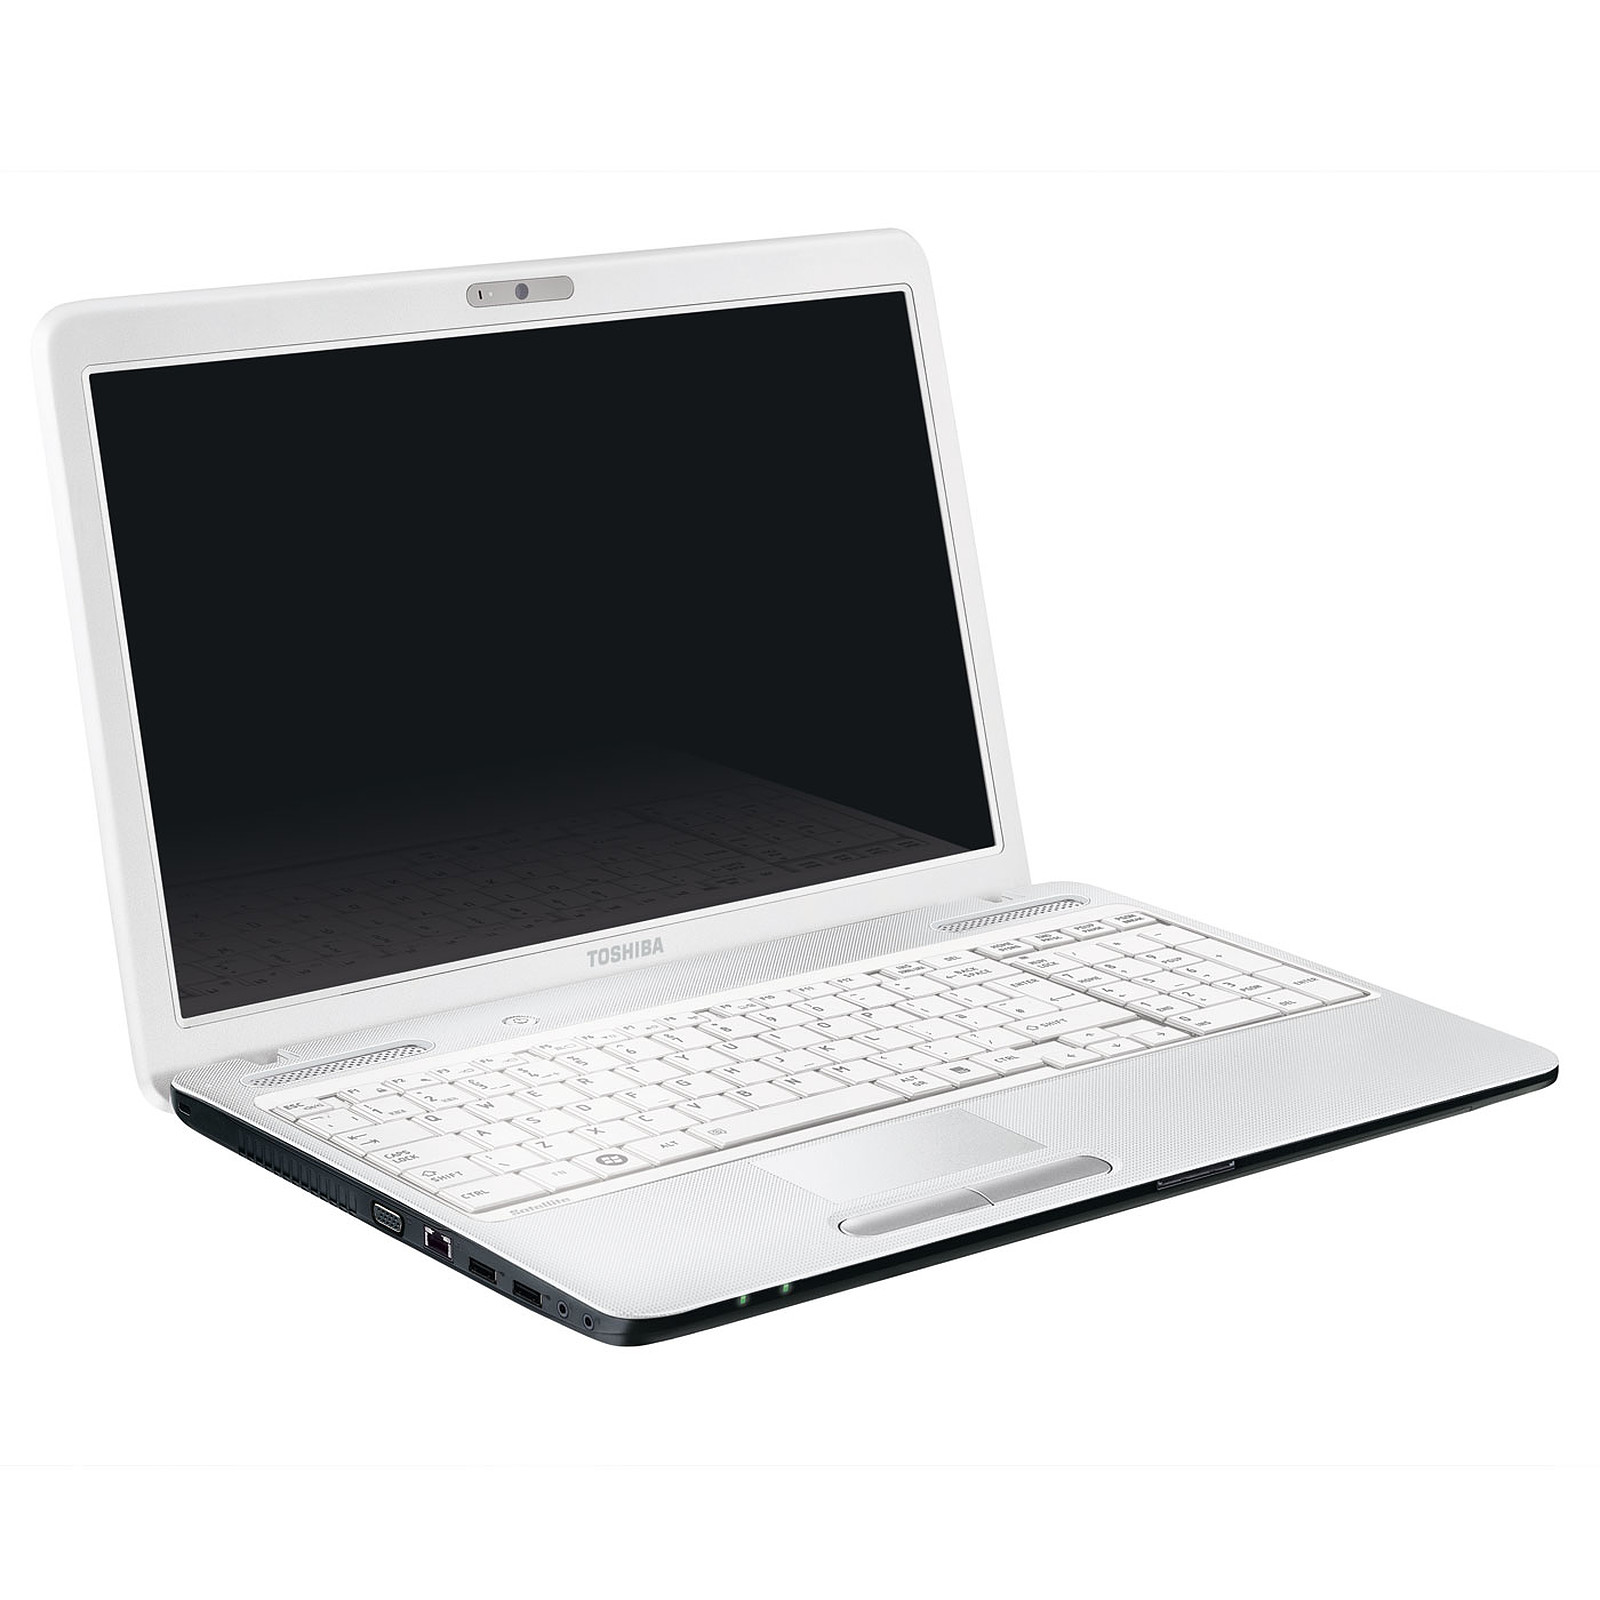 gratuitement pilote toshiba satellite c660